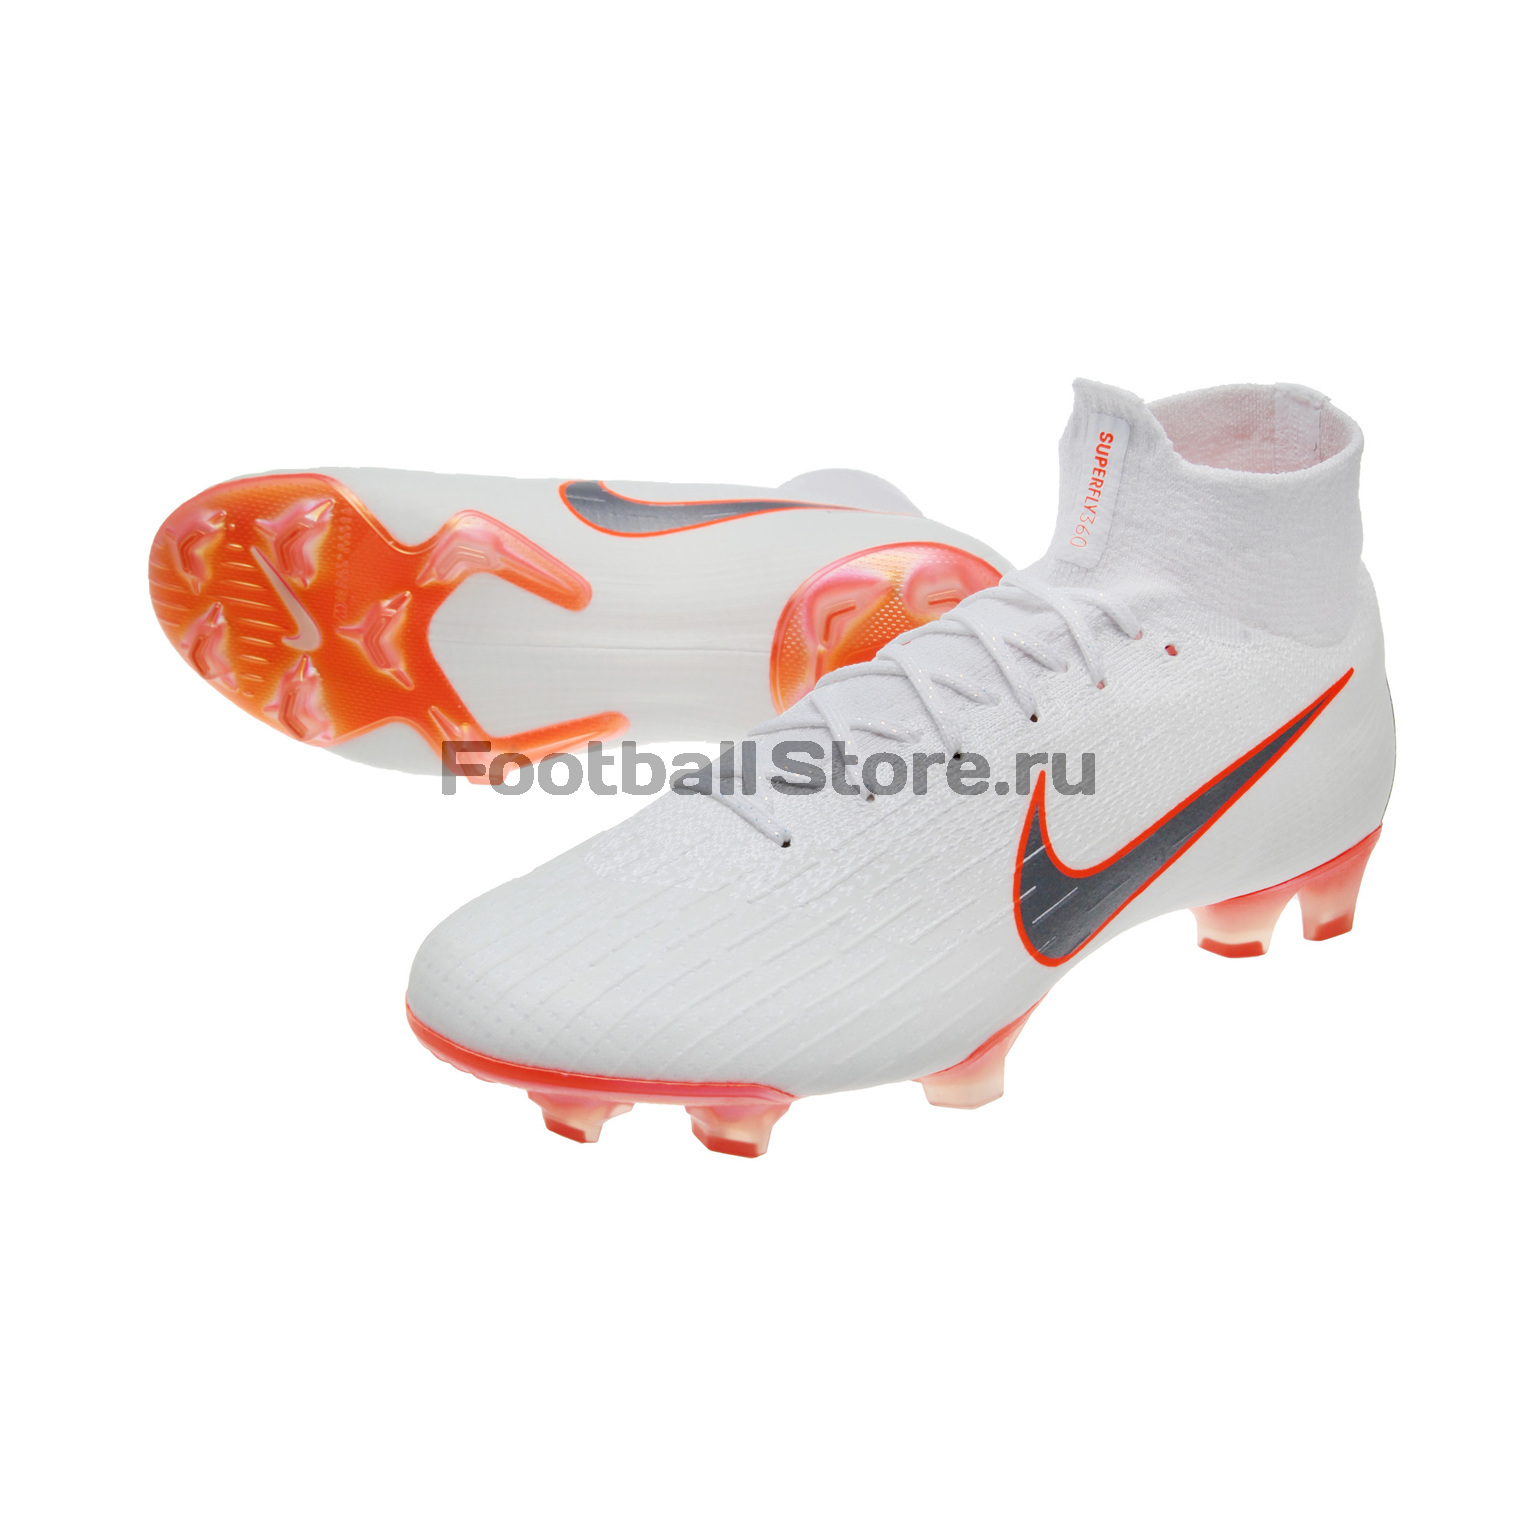 Бутсы Nike Superfly 6 Elite FG AH7365-107 бутсы nike шиповки nike jr tiempox legend vi tf 819191 018